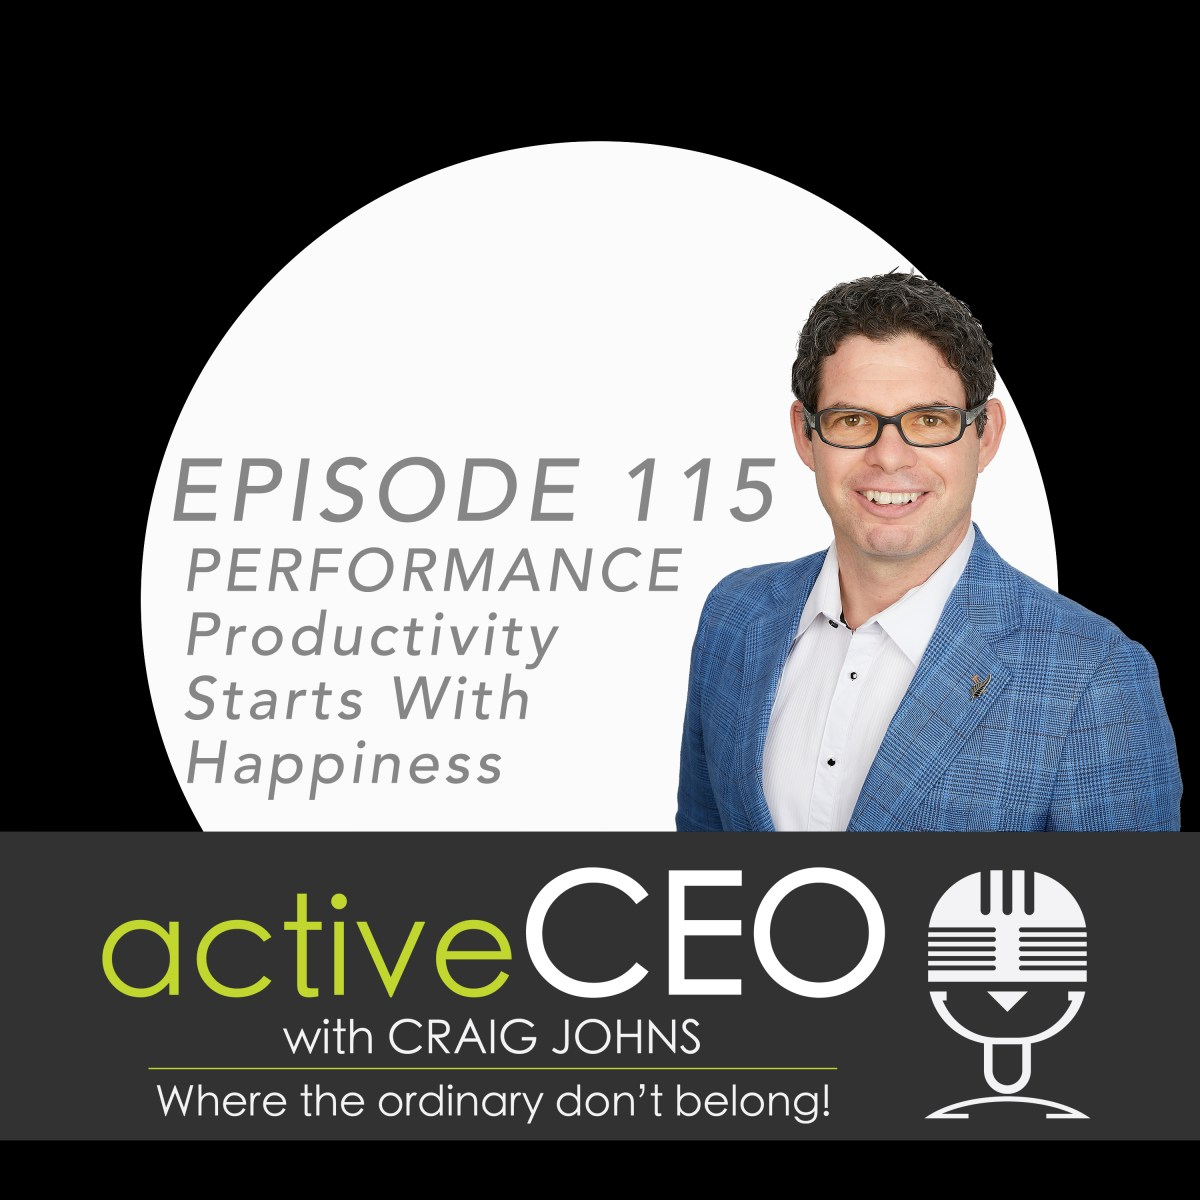 active CEO Podcast Craig Johns NRG2Perform High Performance Leadership PERFORMANCE Productivity Starts With Happiness